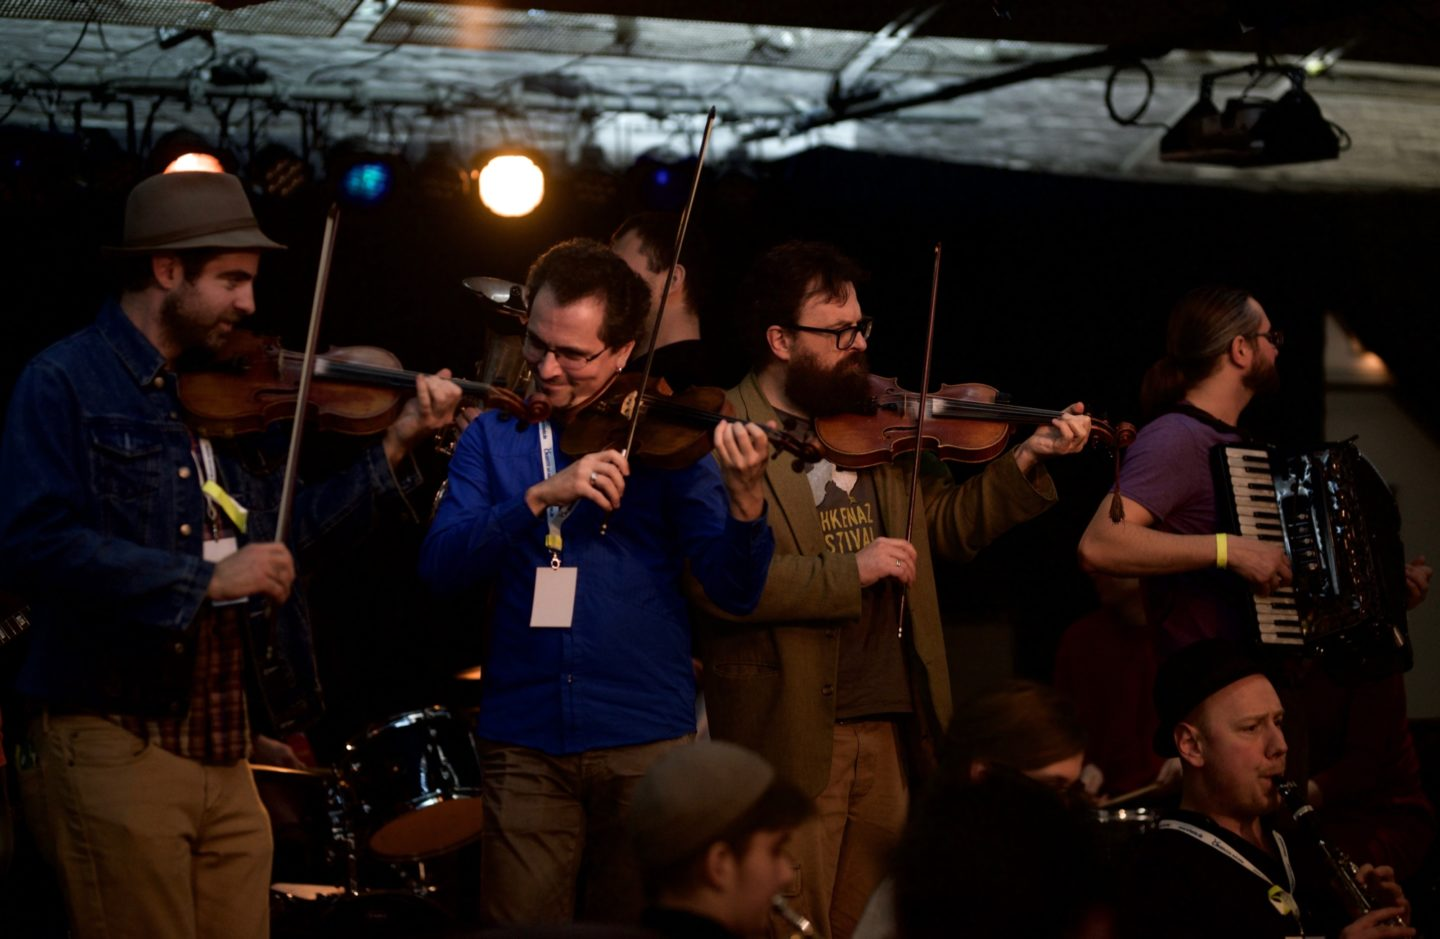 <p>Musicians Craig Judelman, Mark Kovnatskiy, Mitia Khramtsov, and Ilya Shneyveys at the Shtetl Neukoelln Festival. Photo by Shendl&nbsp;Copitman.</p>